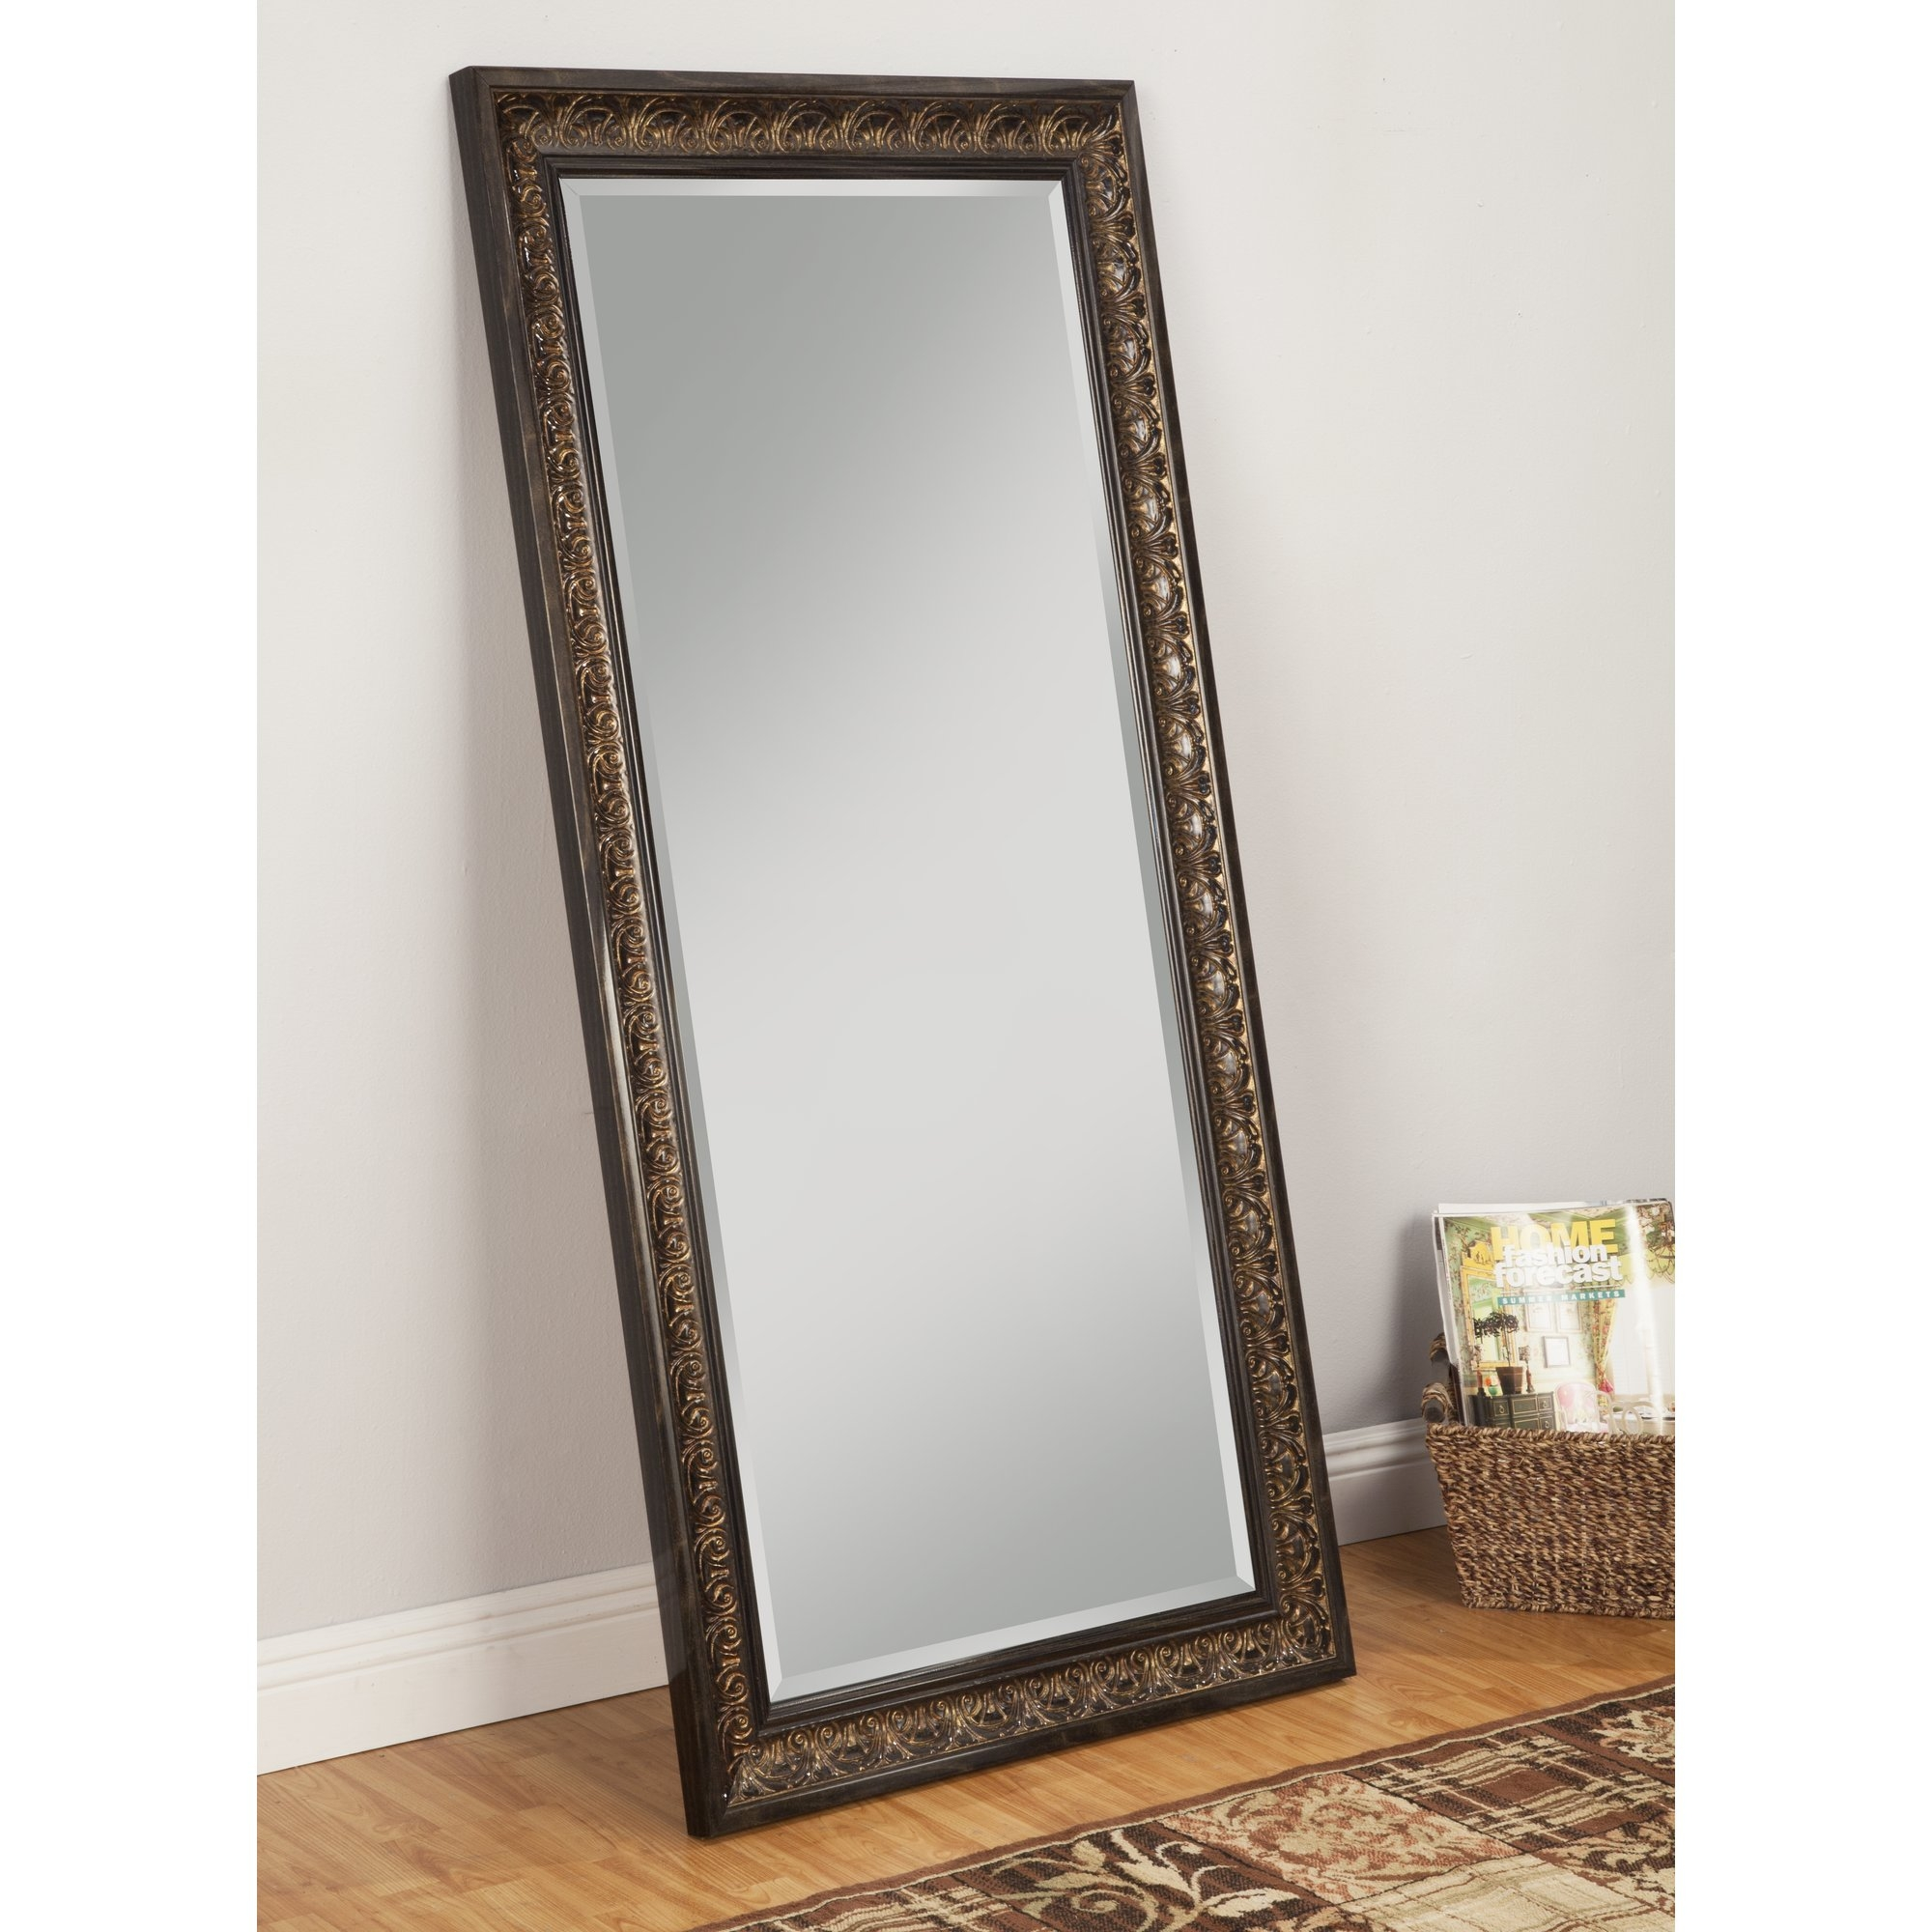 Large Oversized Wall Mirrors Youll Love Wayfair For Oversized Mirrors For Sale (View 14 of 15)